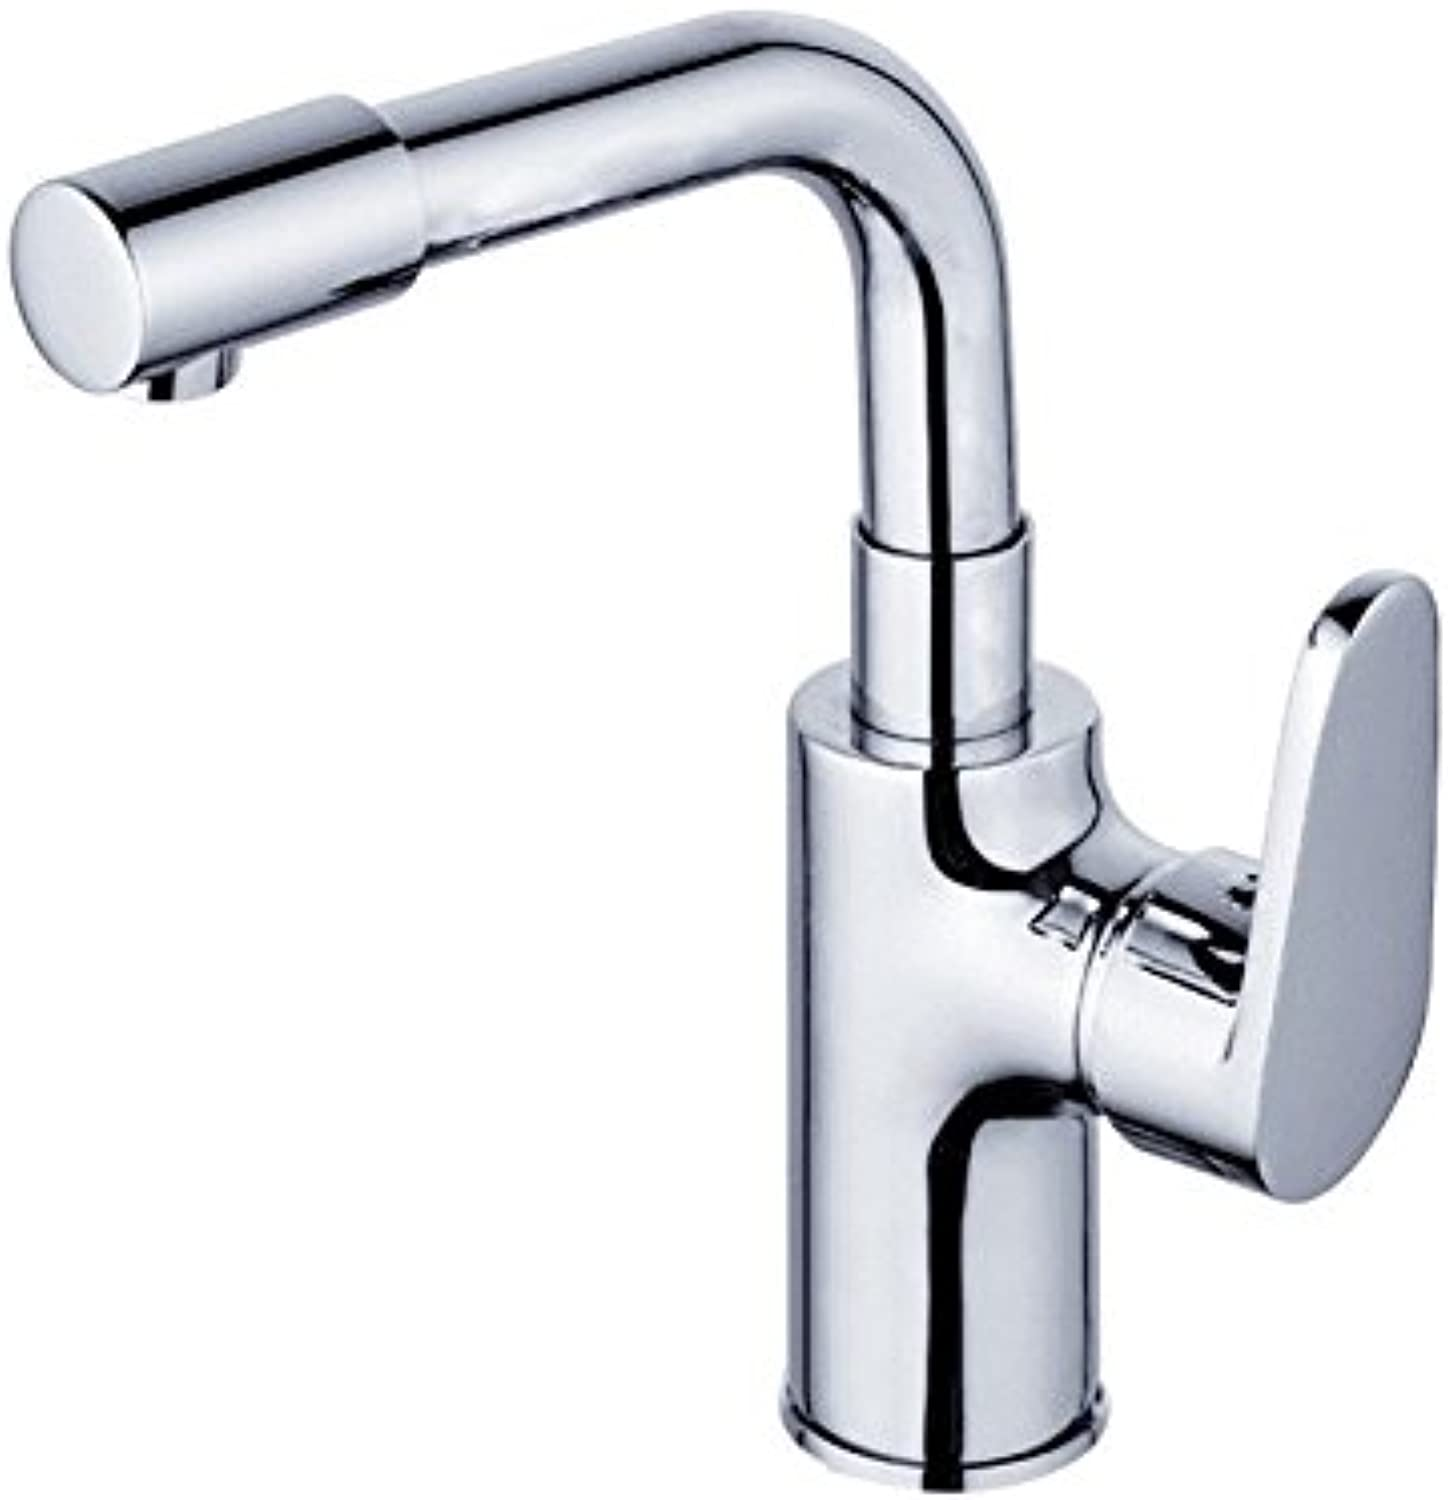 LHbox Basin Mixer Tap Bathroom Sink Faucet Single hole mixing of hot and cold water tap to turn the water full copper basin basin sinks faucets,